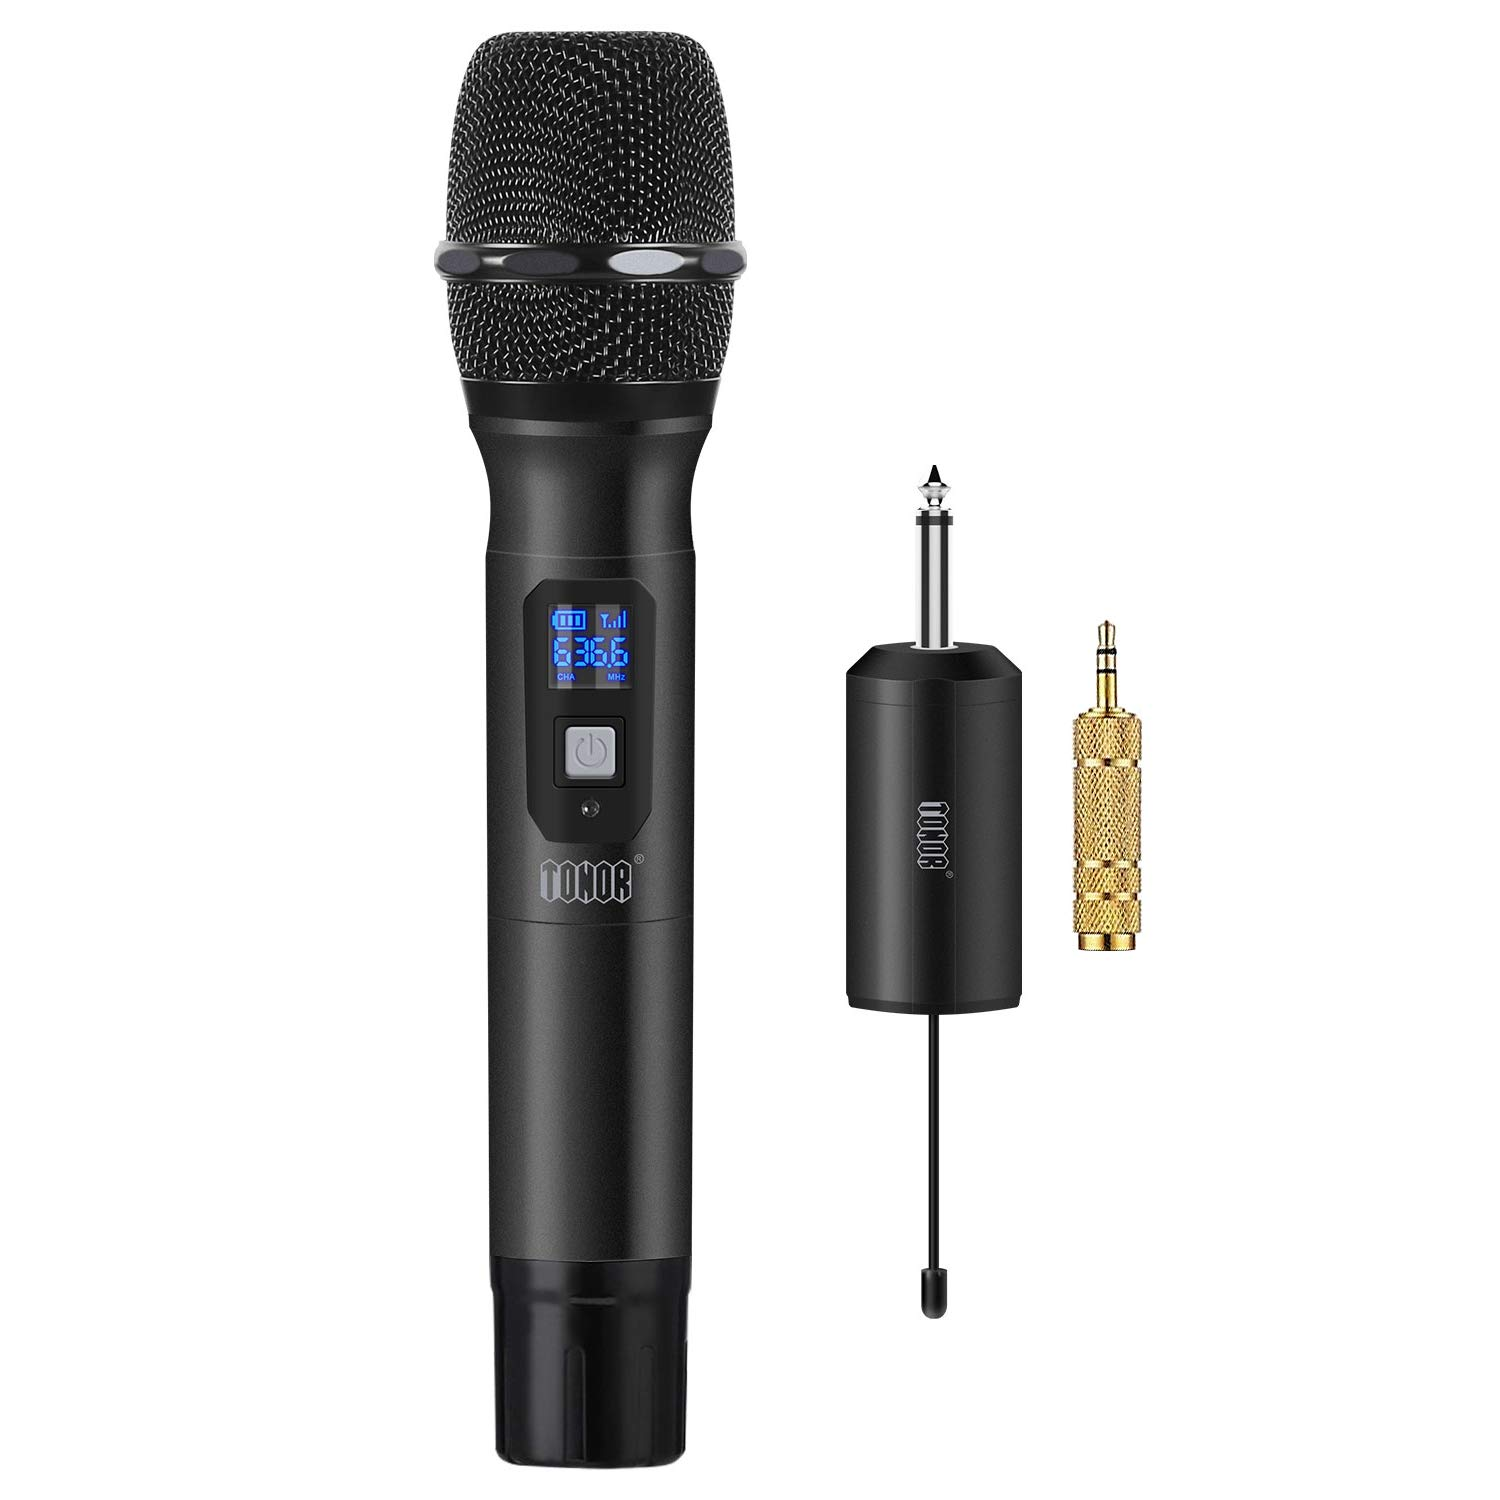 TONOR Wireless Microphone Metal Handheld Mic UHF 25 Channel with Mini Receiver 1/4'' Output for Stage/Church/Karaoke/Party/Business Meeting/PA Systems, Black by TONOR